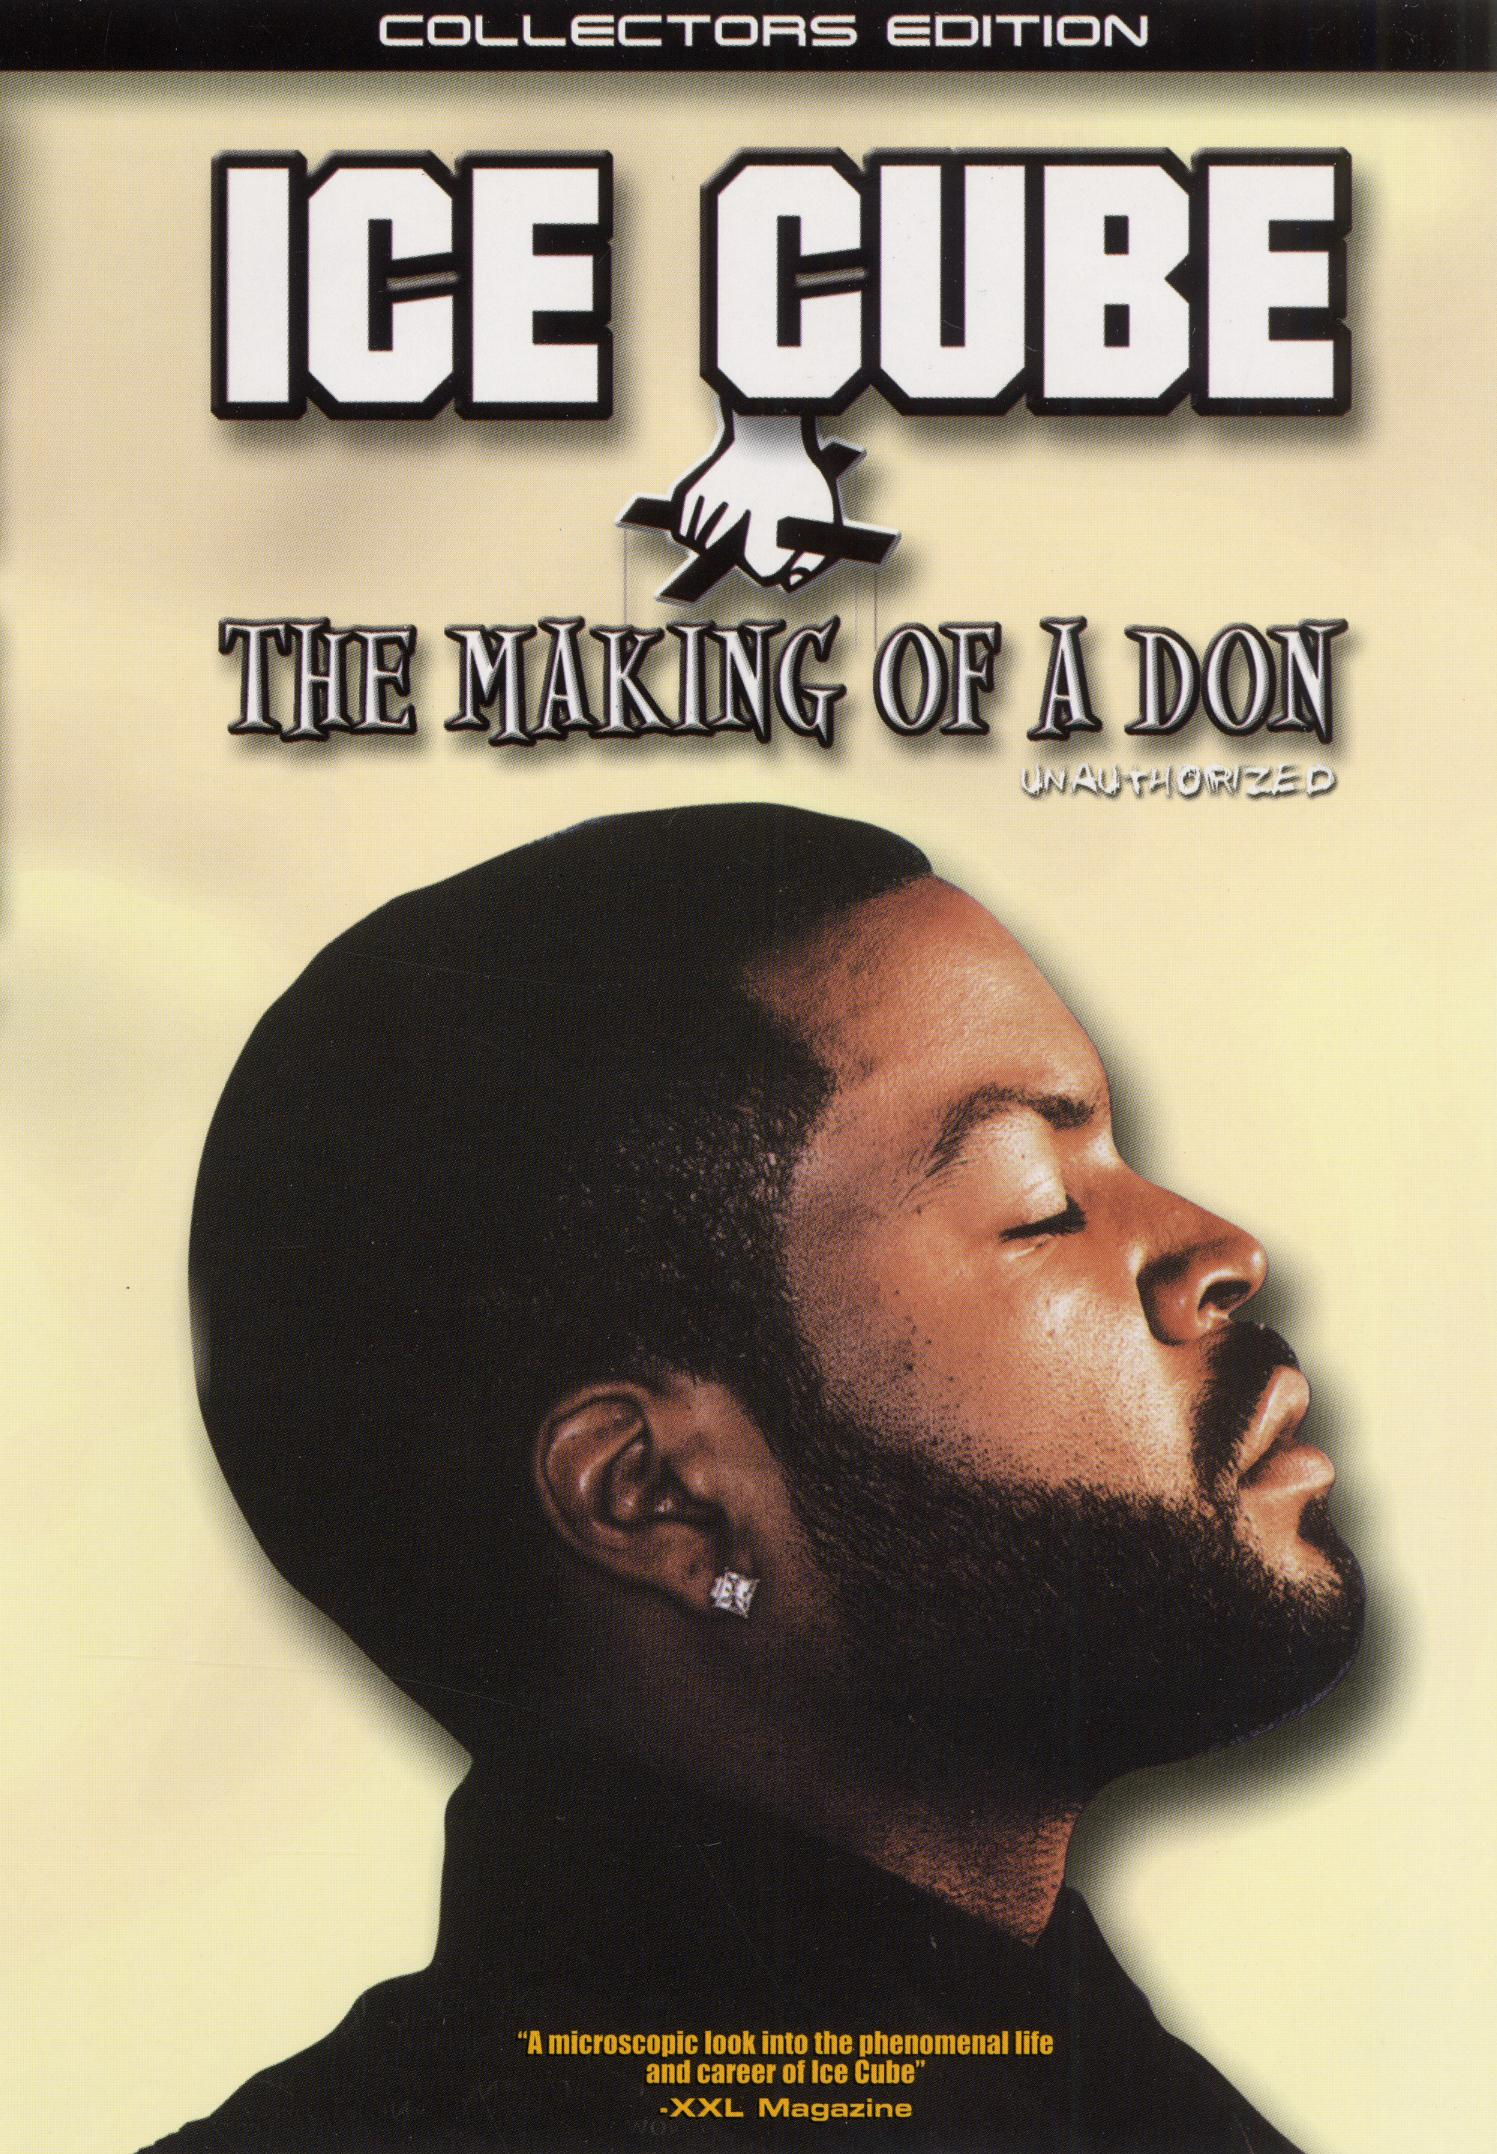 Ice Cube: The Making of a Don - Unauthorized